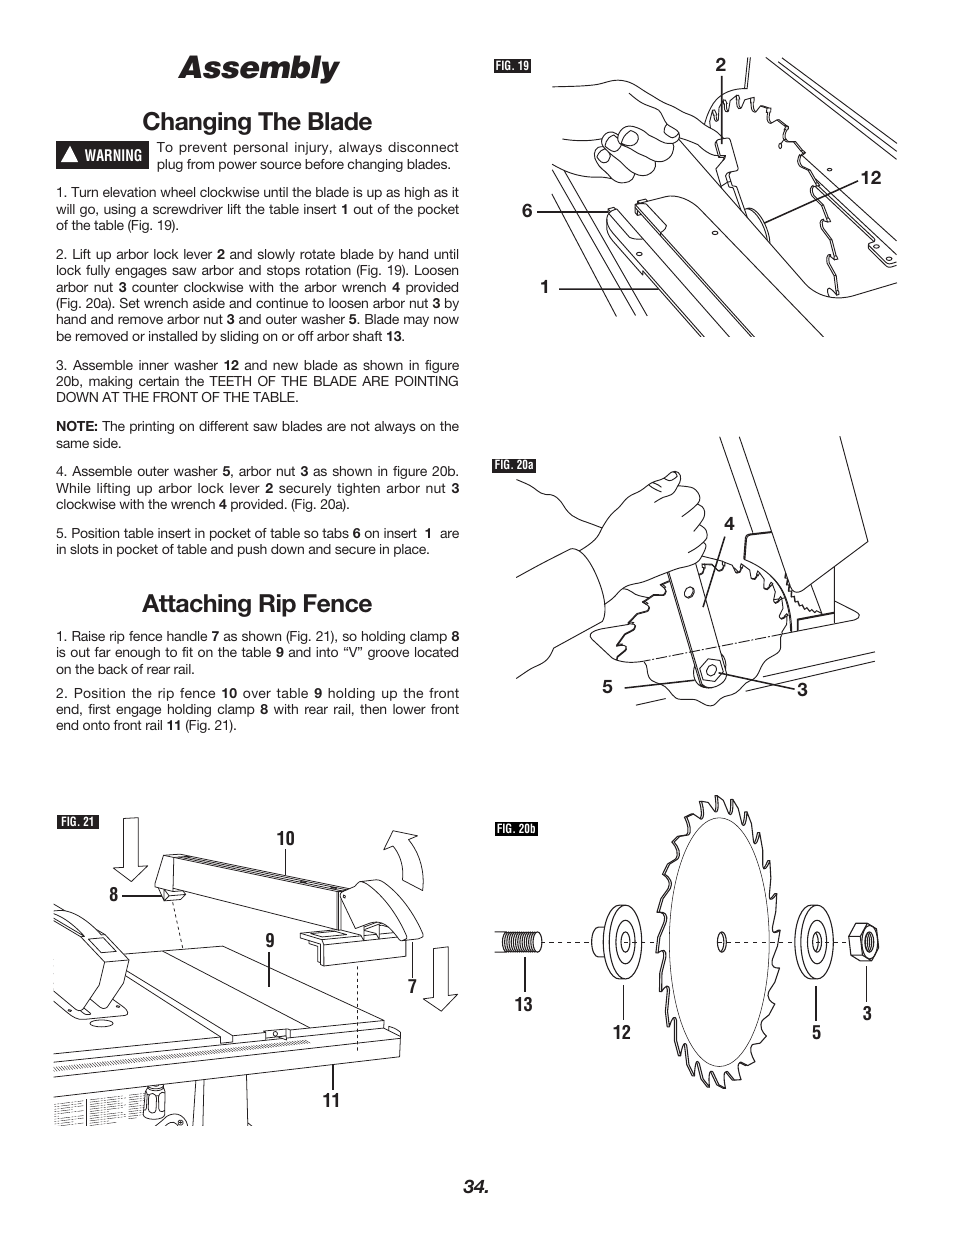 Assembly changing the blade attaching rip fence bosch 4000 user assembly changing the blade attaching rip fence bosch 4000 user manual page 34 68 greentooth Choice Image